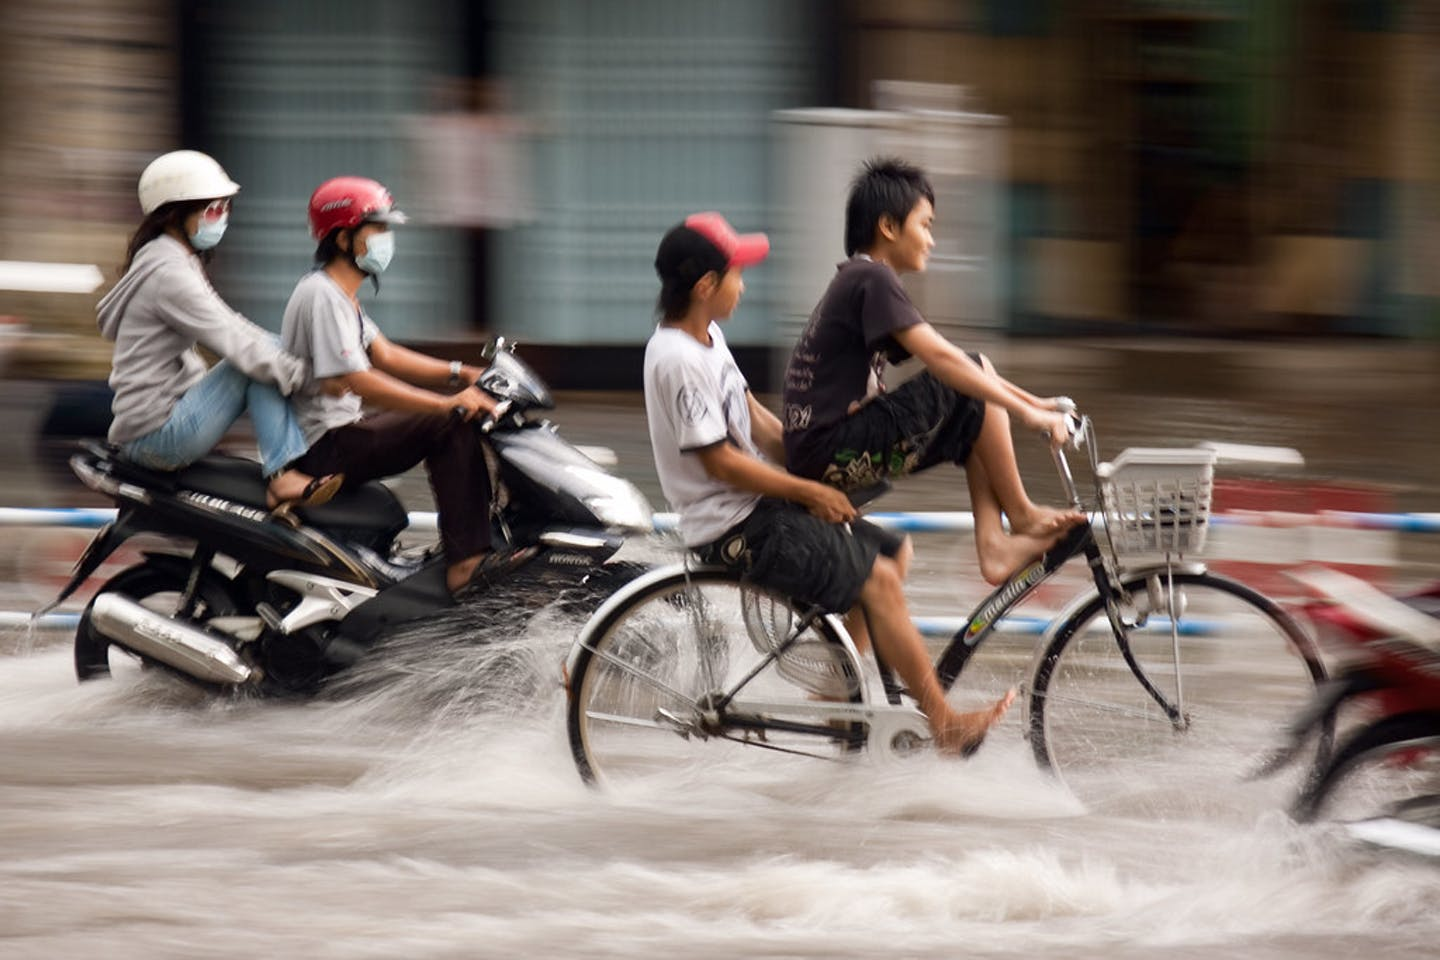 Bikers ride through flood in Vietnam.